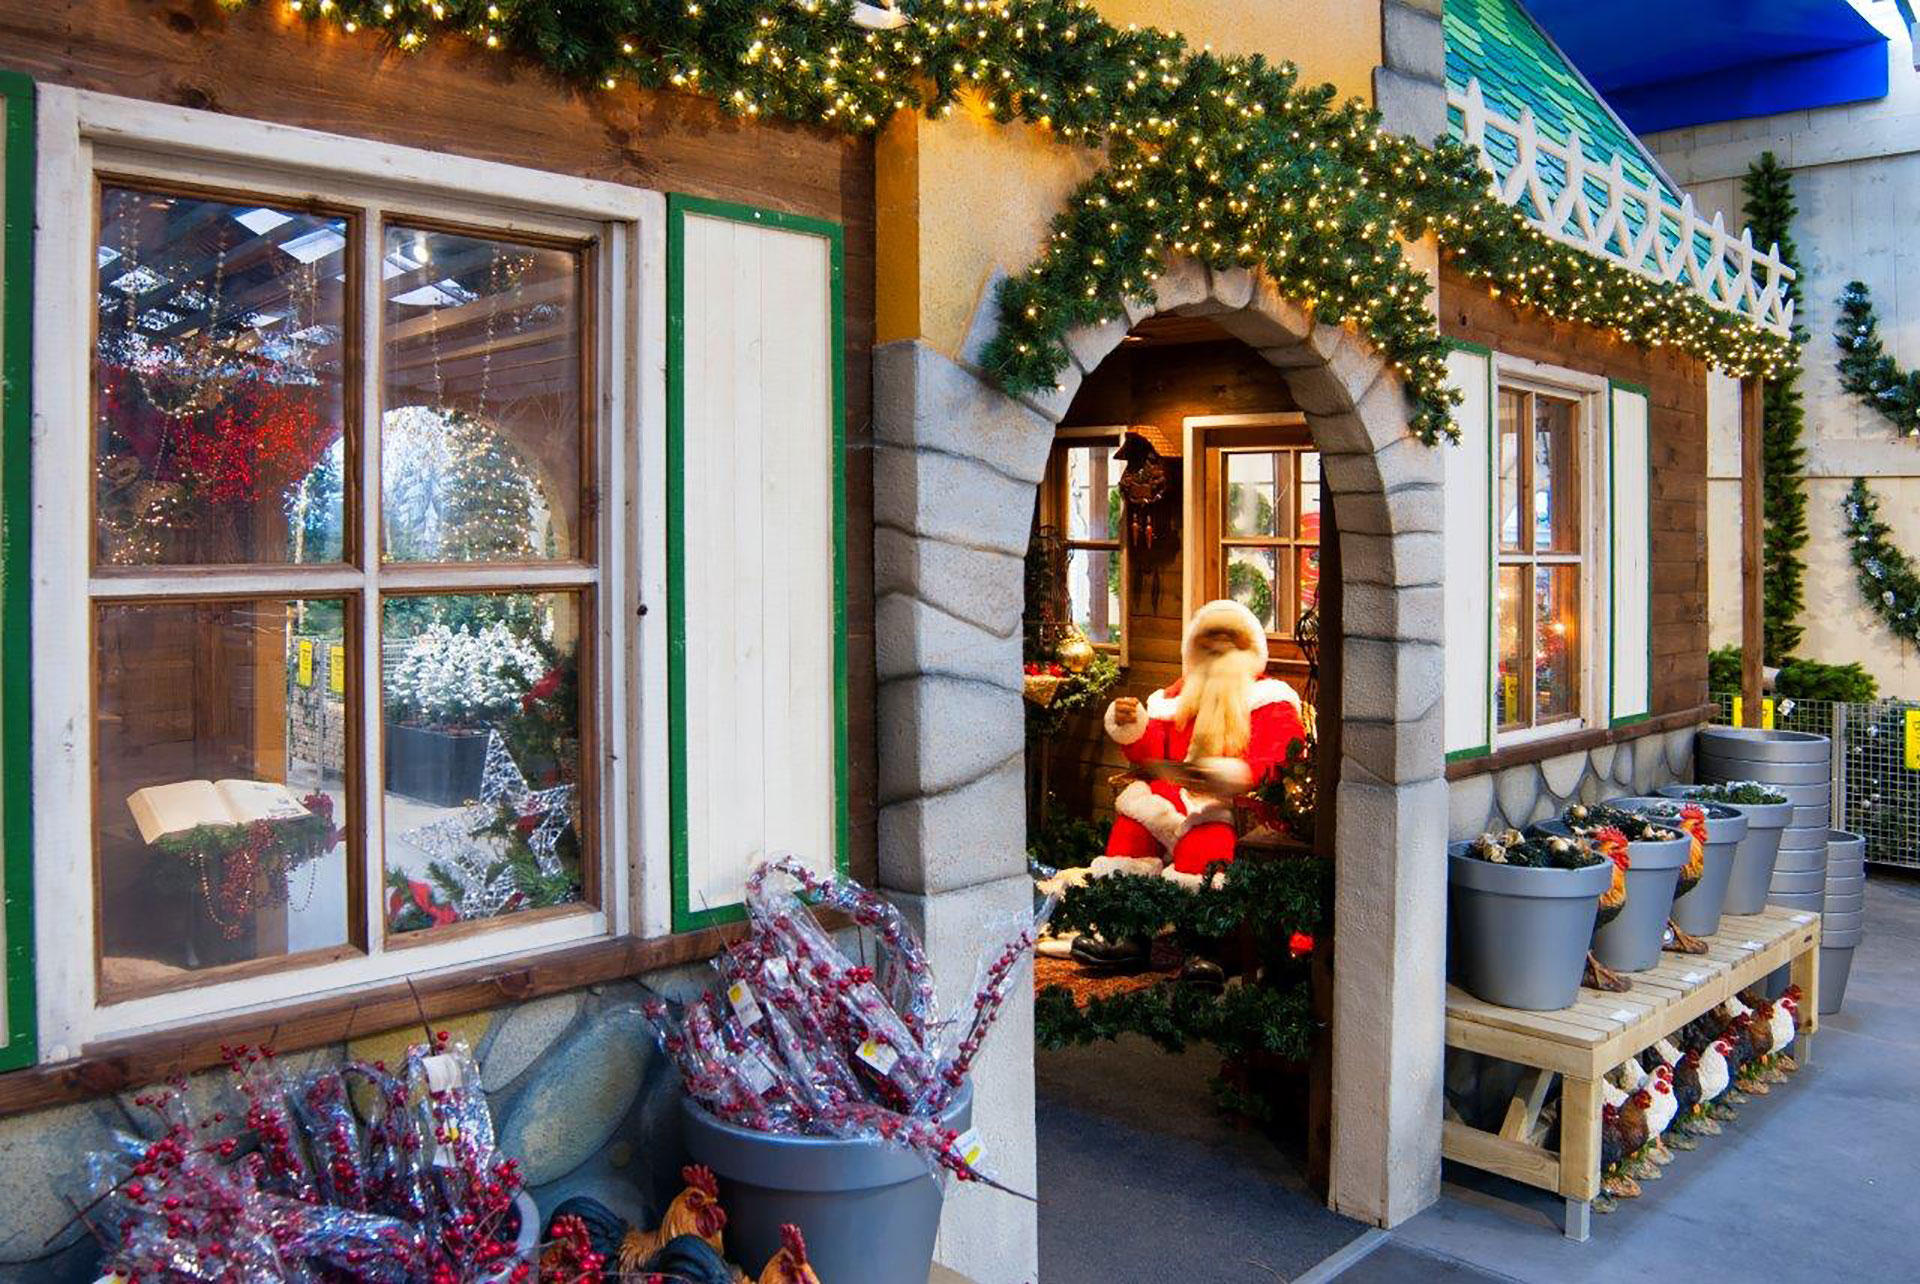 Decor of the Christmas Chalet | Phixion